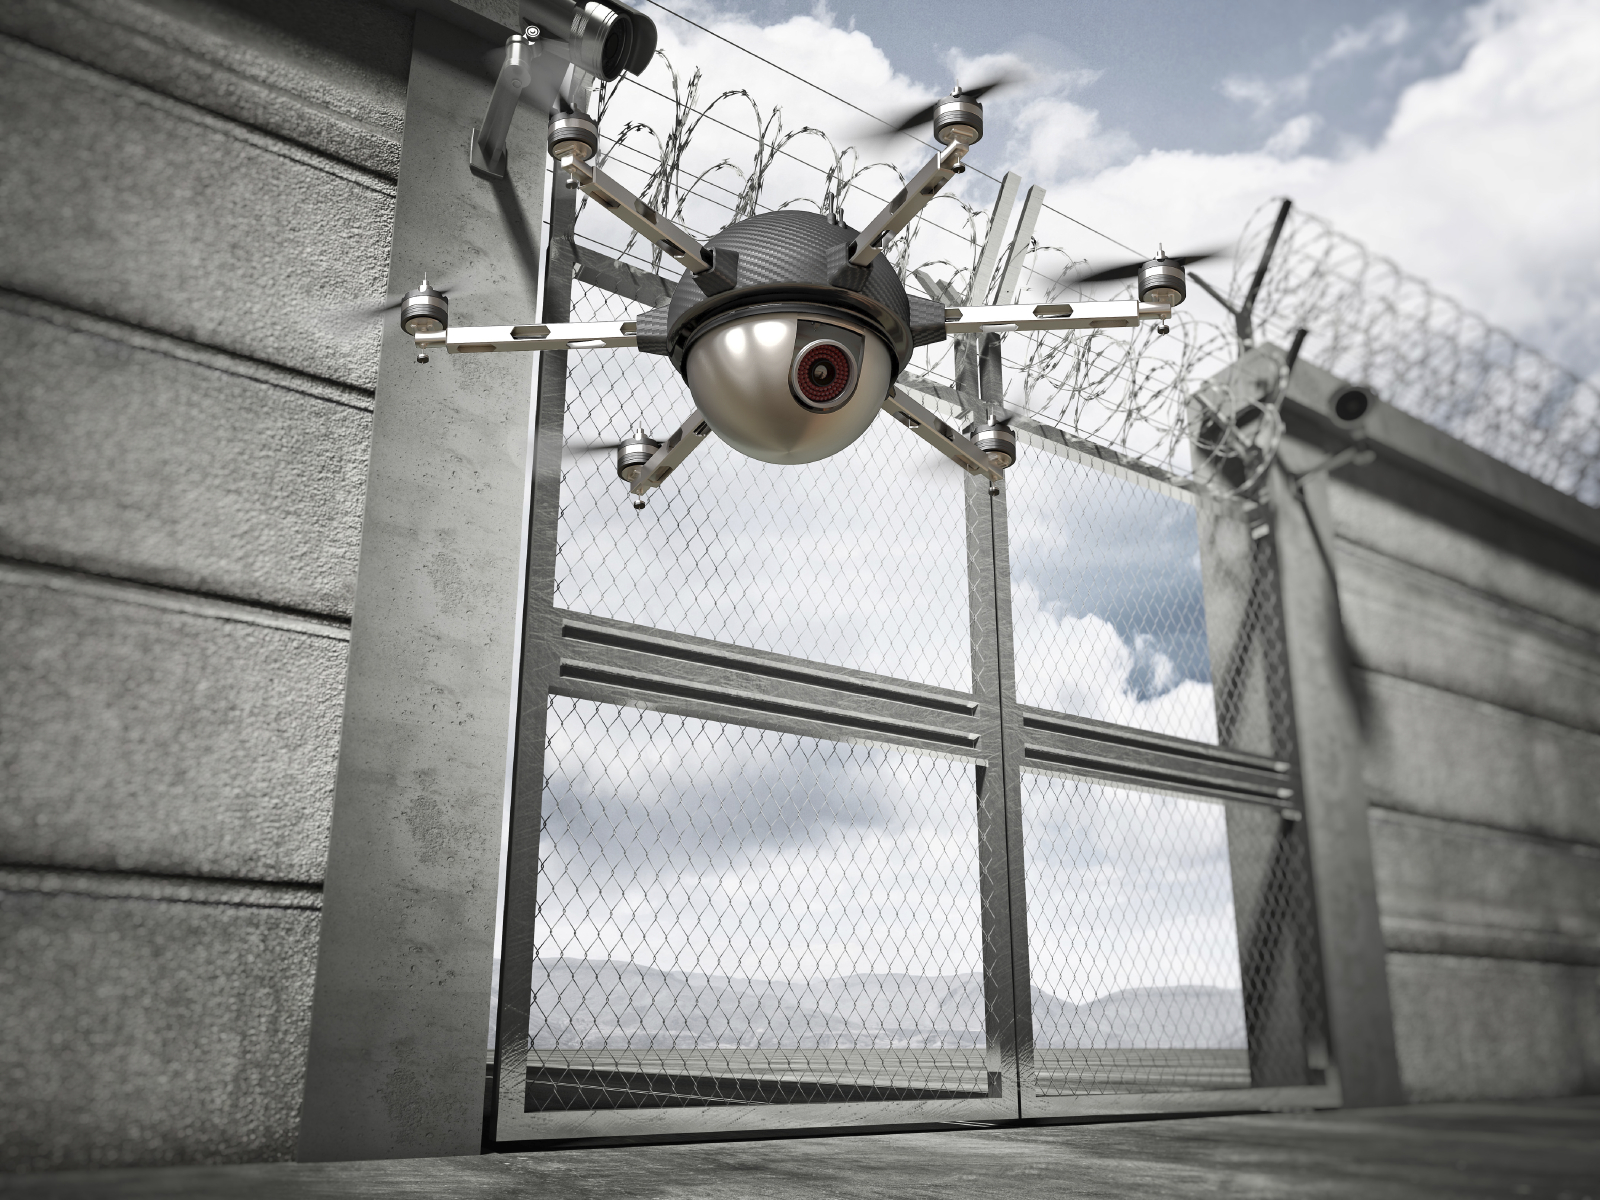 Drone in correctional facility